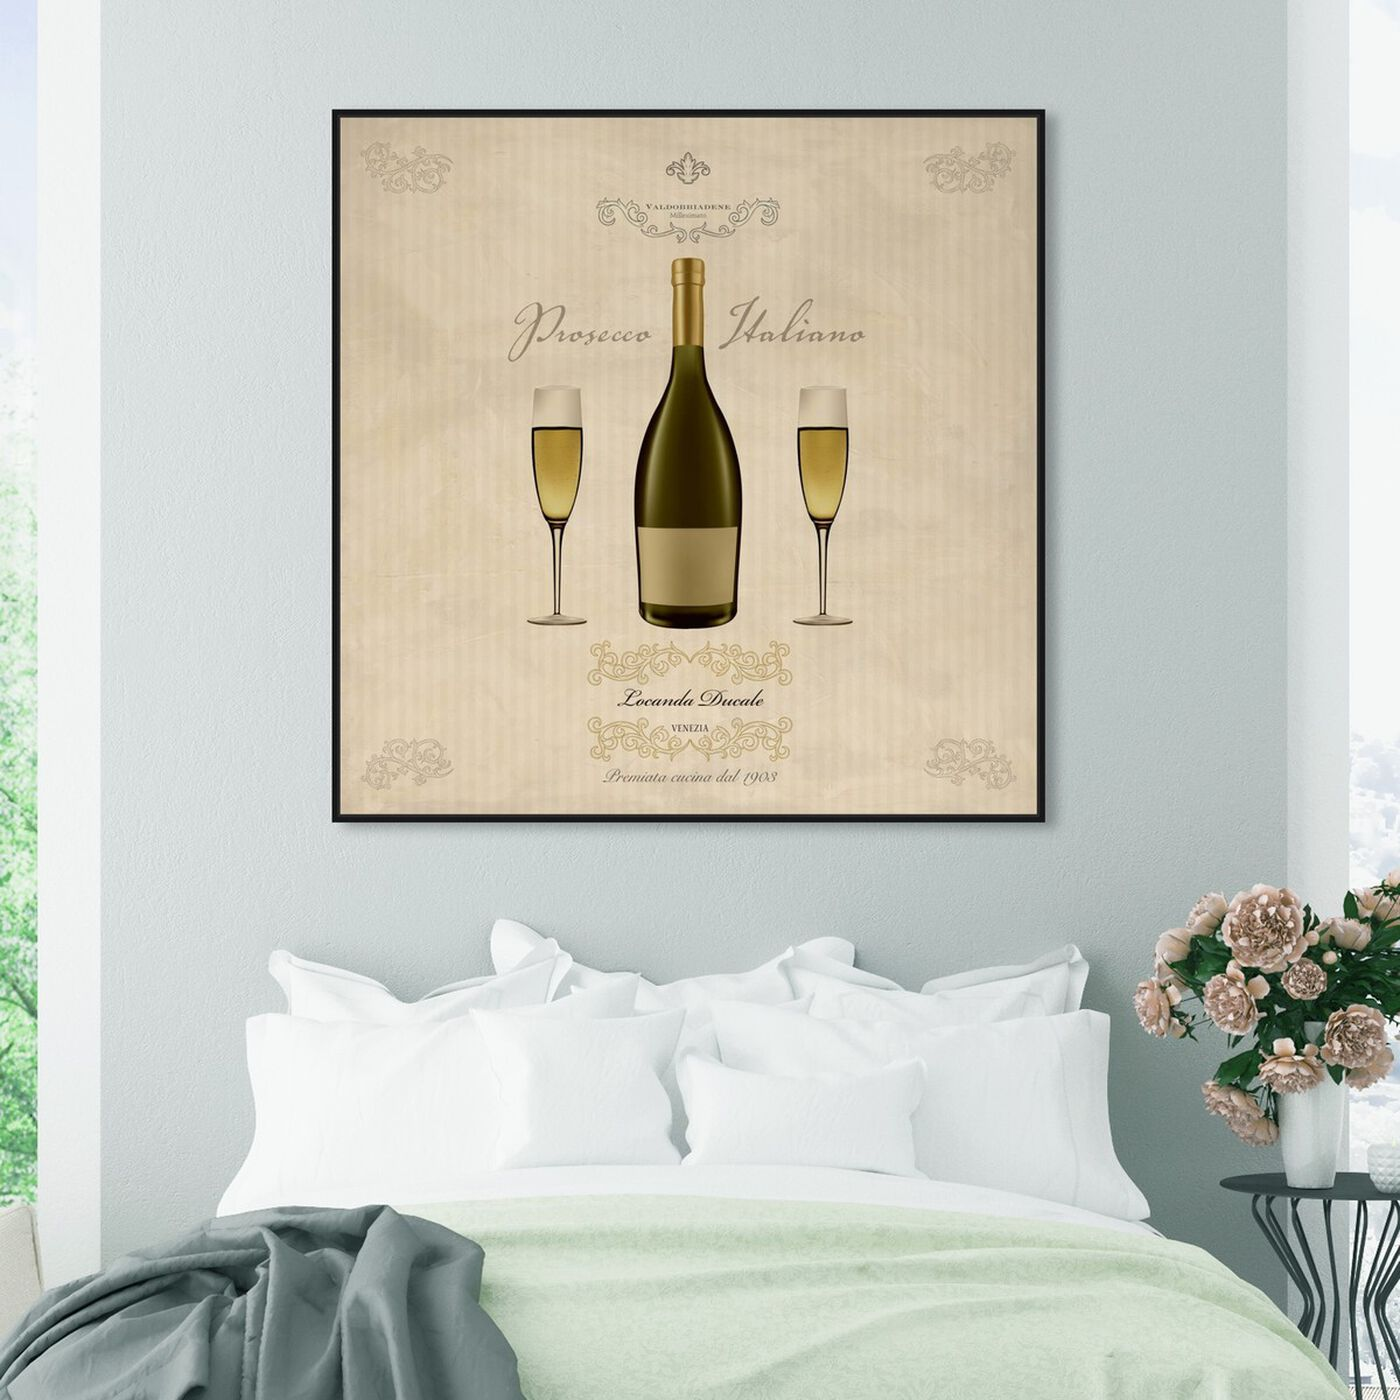 Hanging view of Sai - Prosecco Italiano 1SF1383 featuring drinks and spirits and wine art.